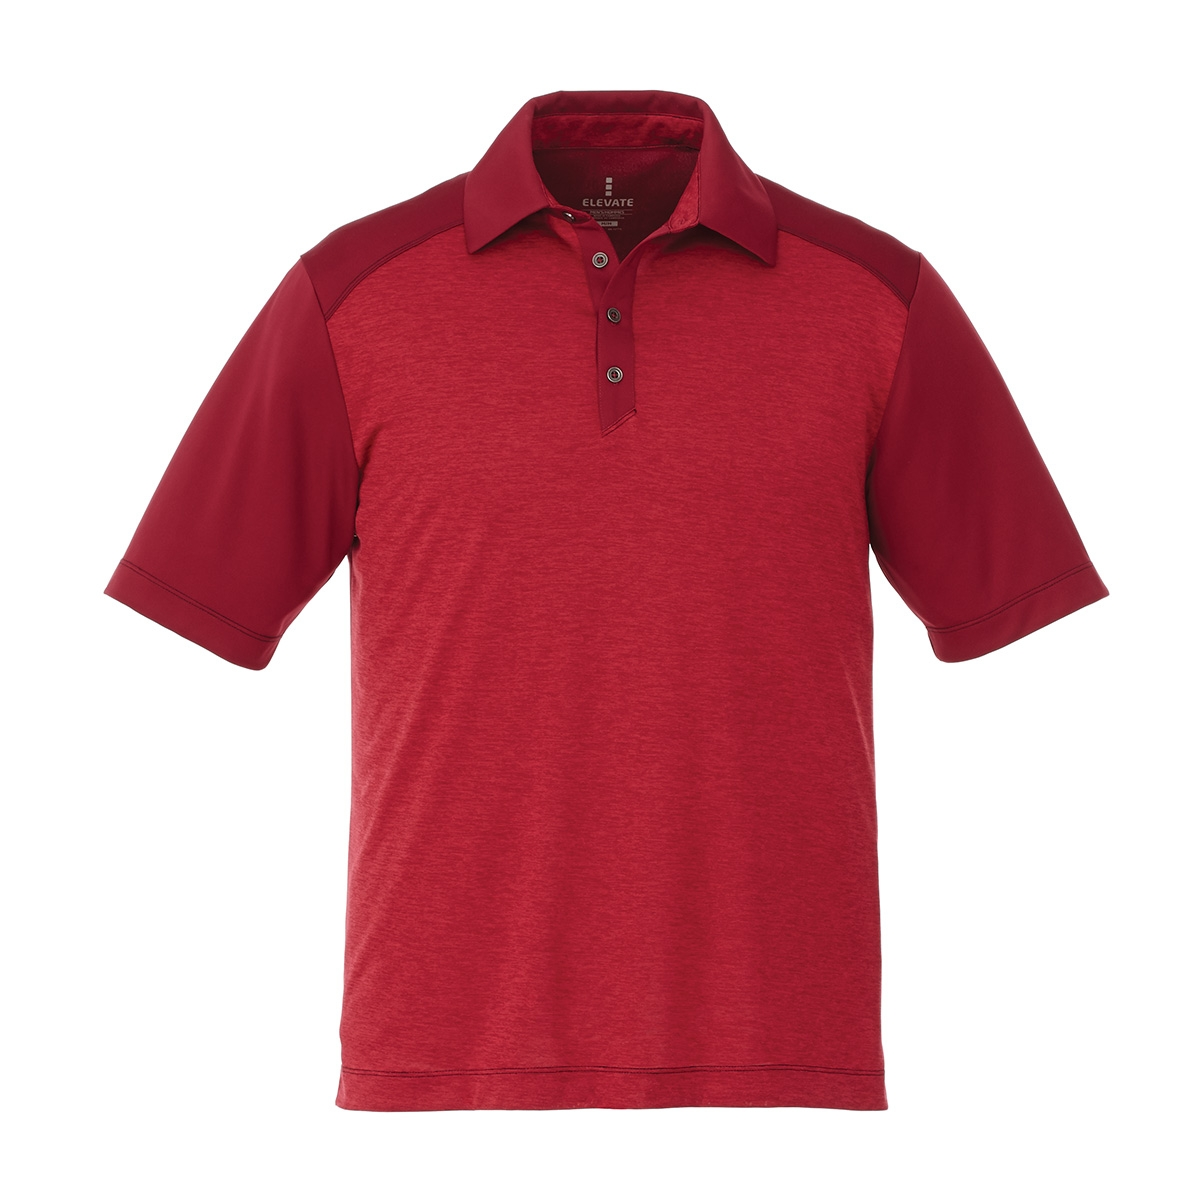 Sagano Short Sleeve Men's Polo Shirt, #16508 - Embroidered